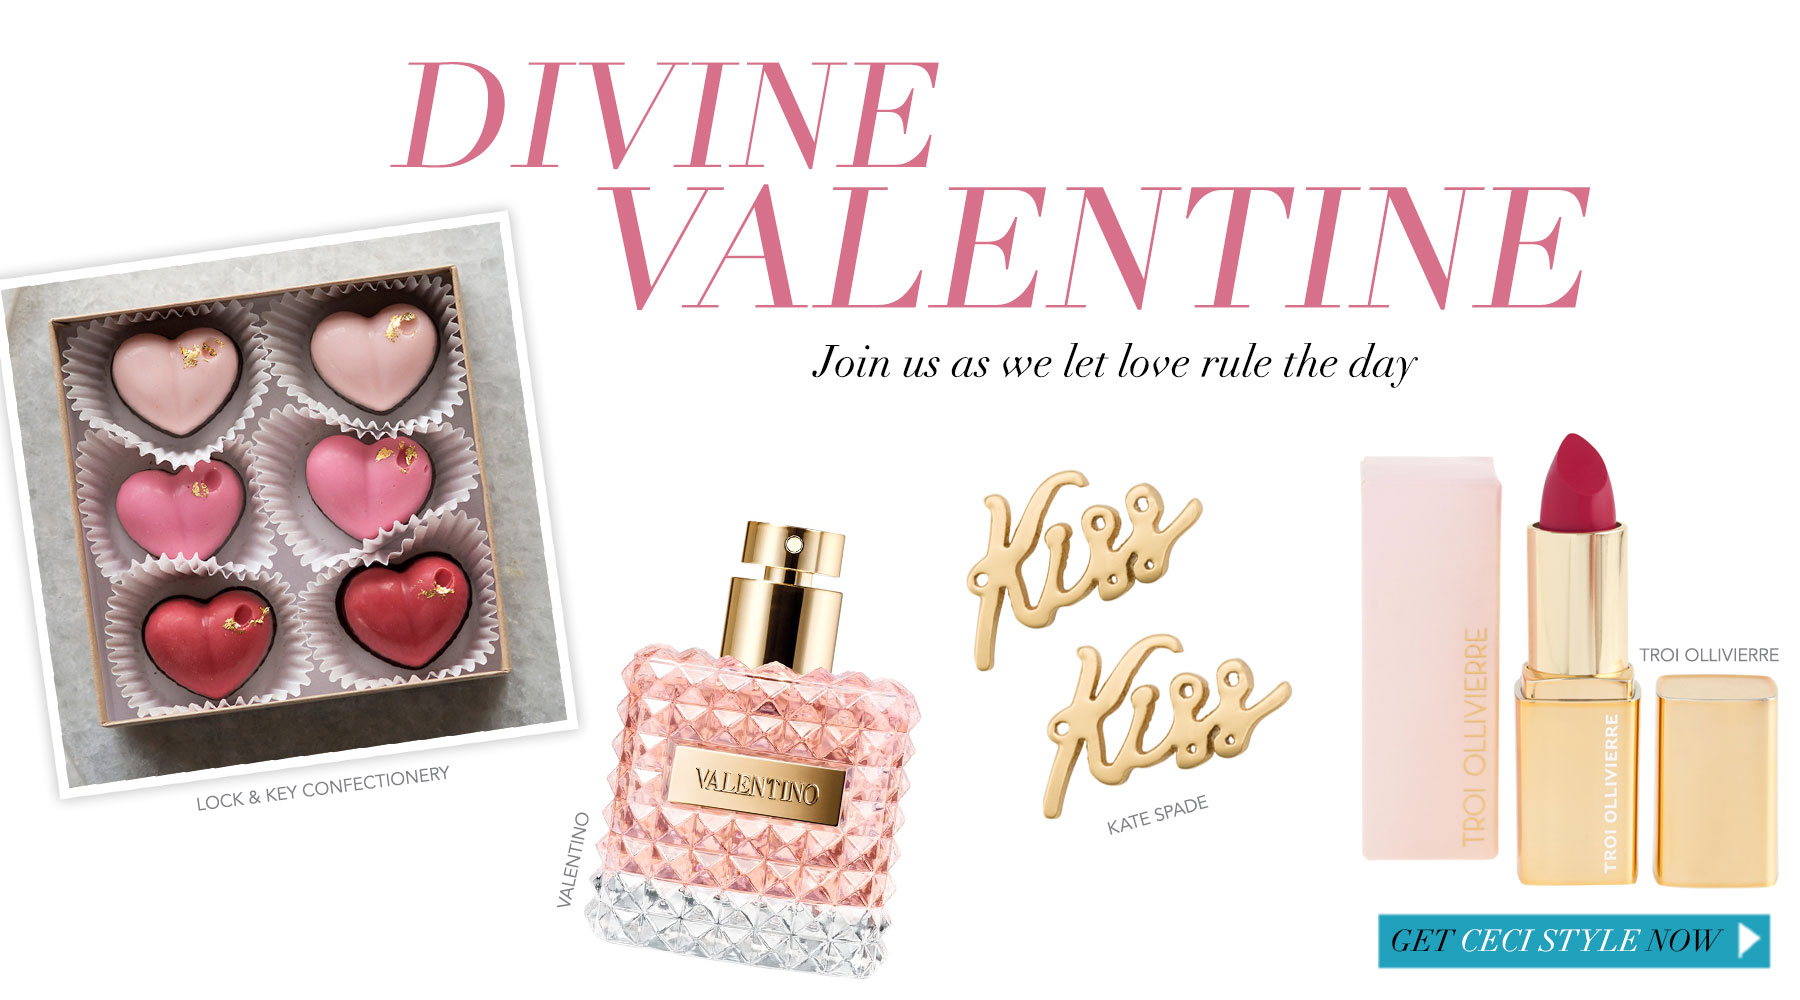 Divine Valentine - Join us as we let love rule the day